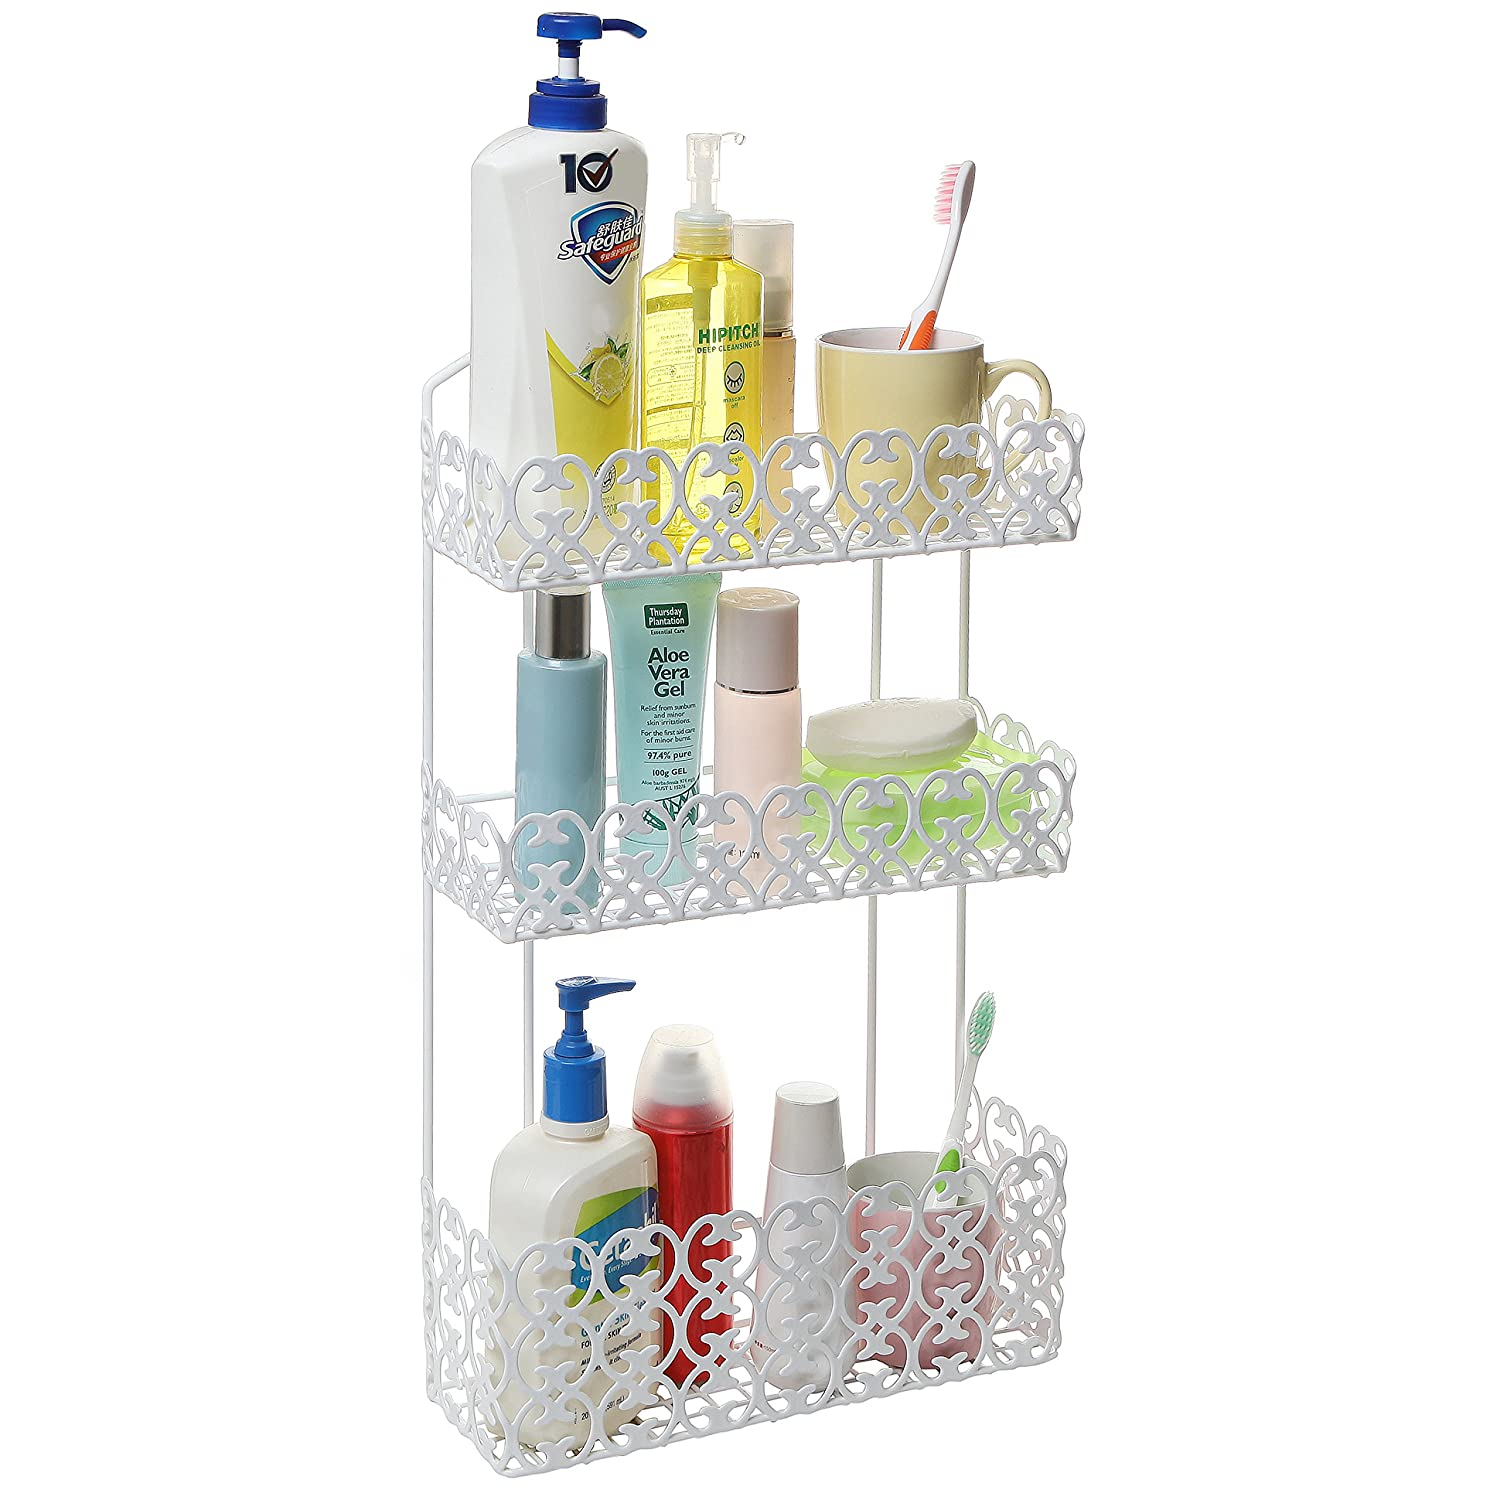 bathroom shelves decorative wall mounted 3 tier shelf baskets kitchen